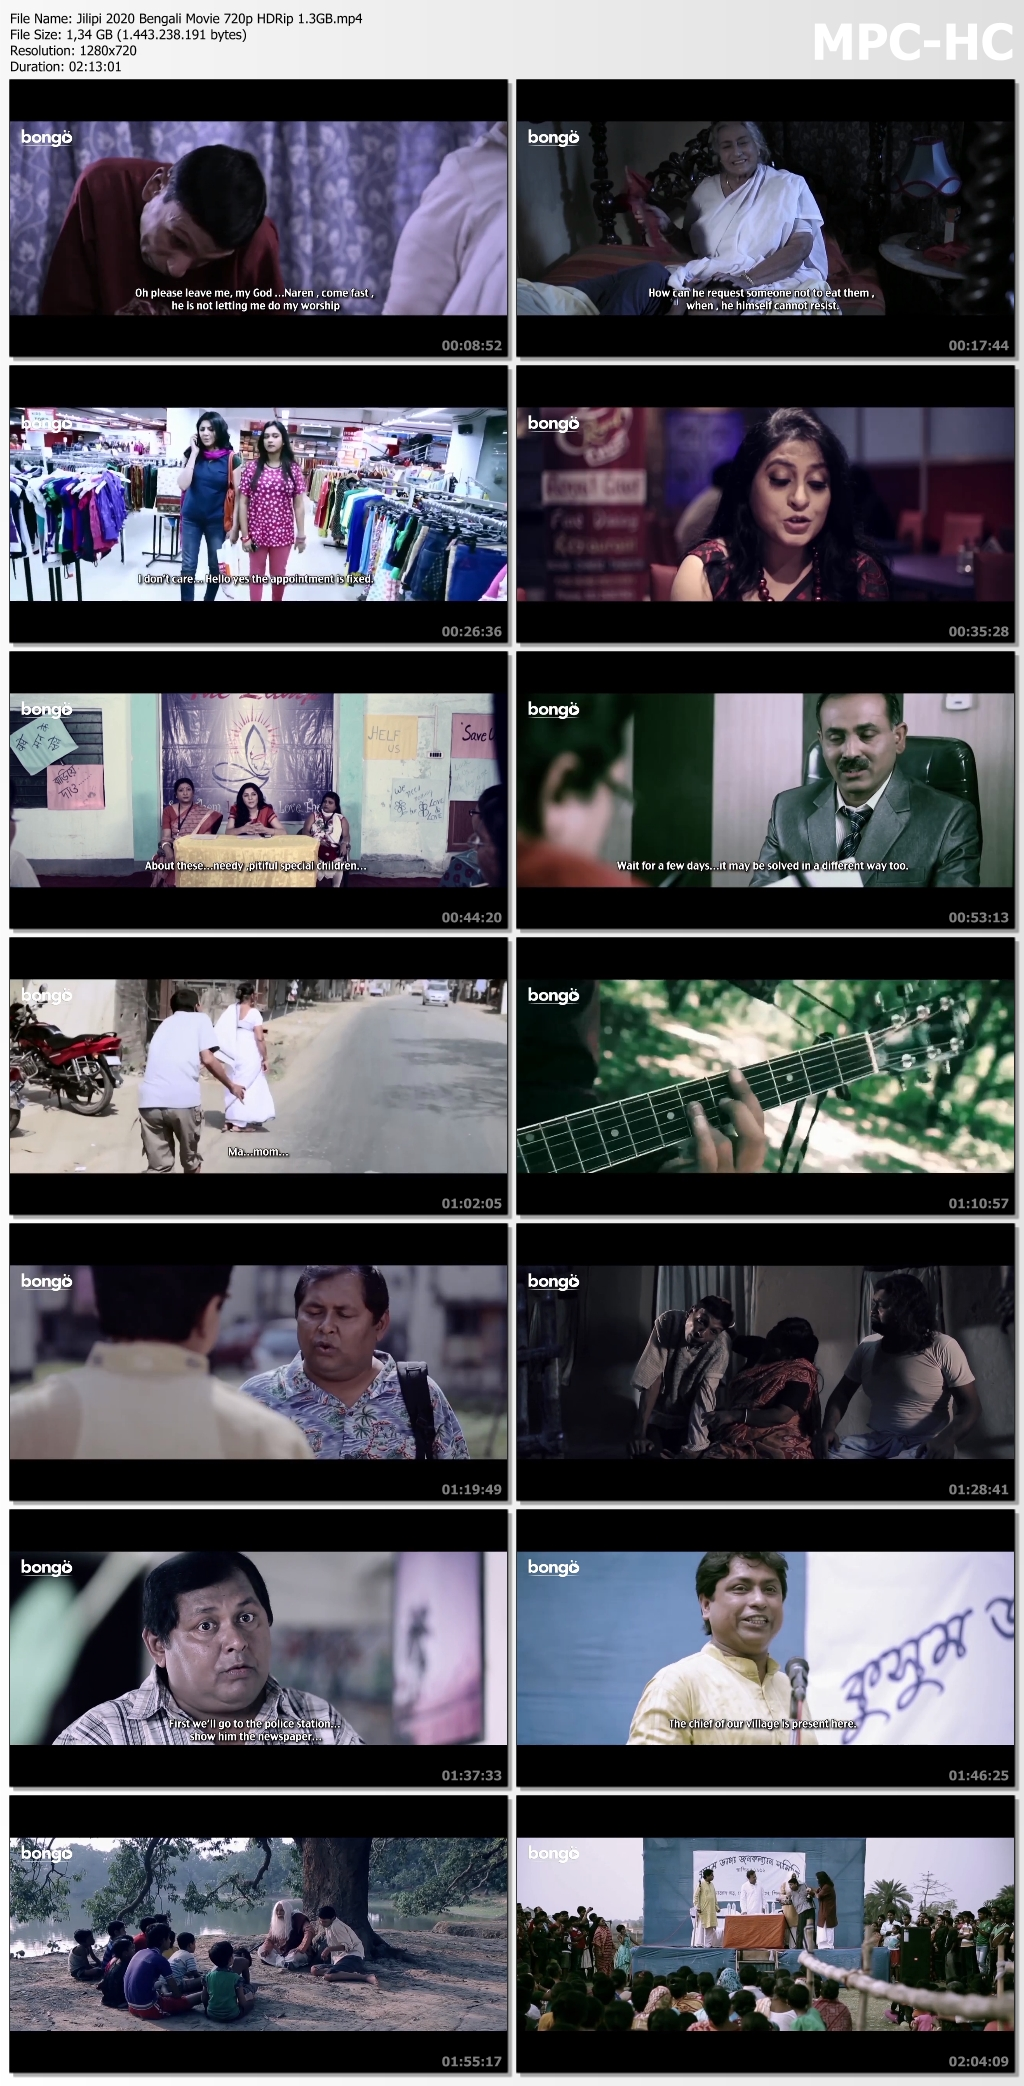 Jilipi-2020-Bengali-Movie-720p-HDRip-1-3-GB-mp4-thumbs